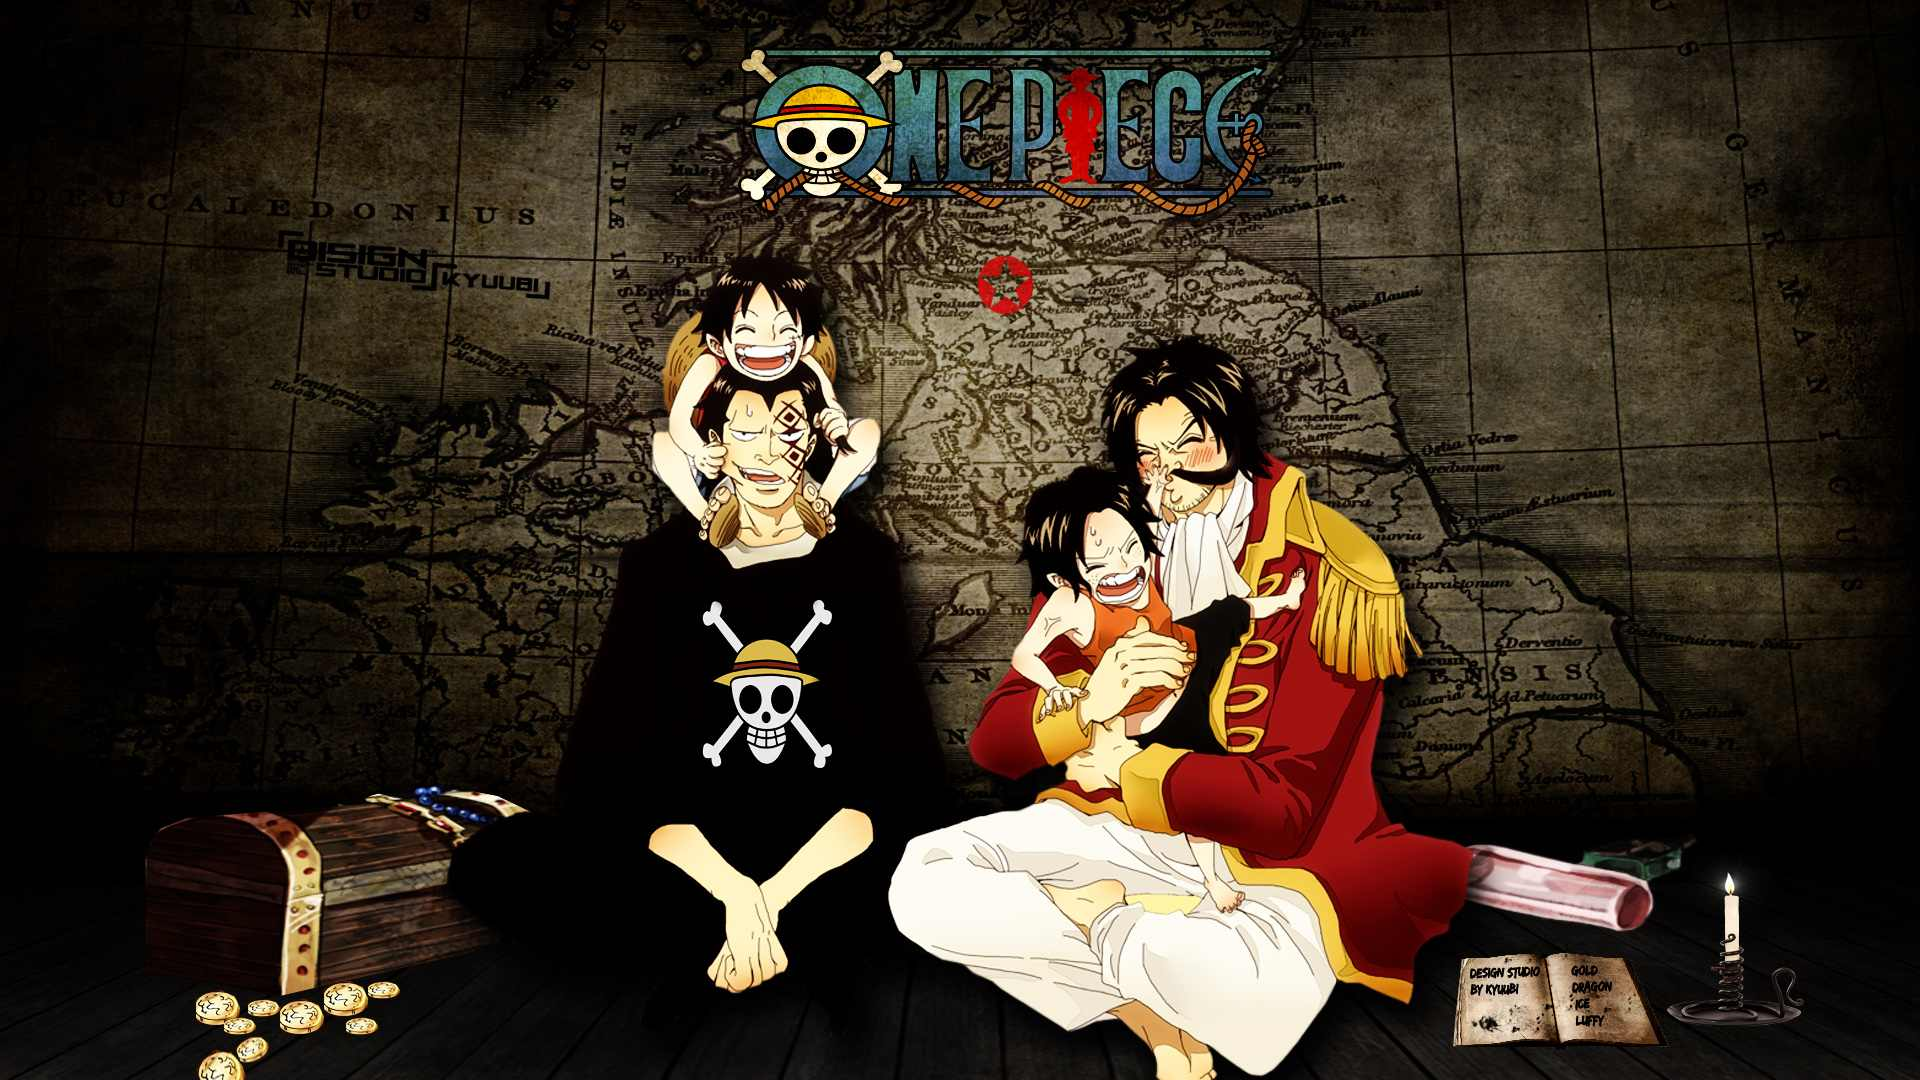 Law One Piece Epic Wallpapers Top Free Law One Piece Epic